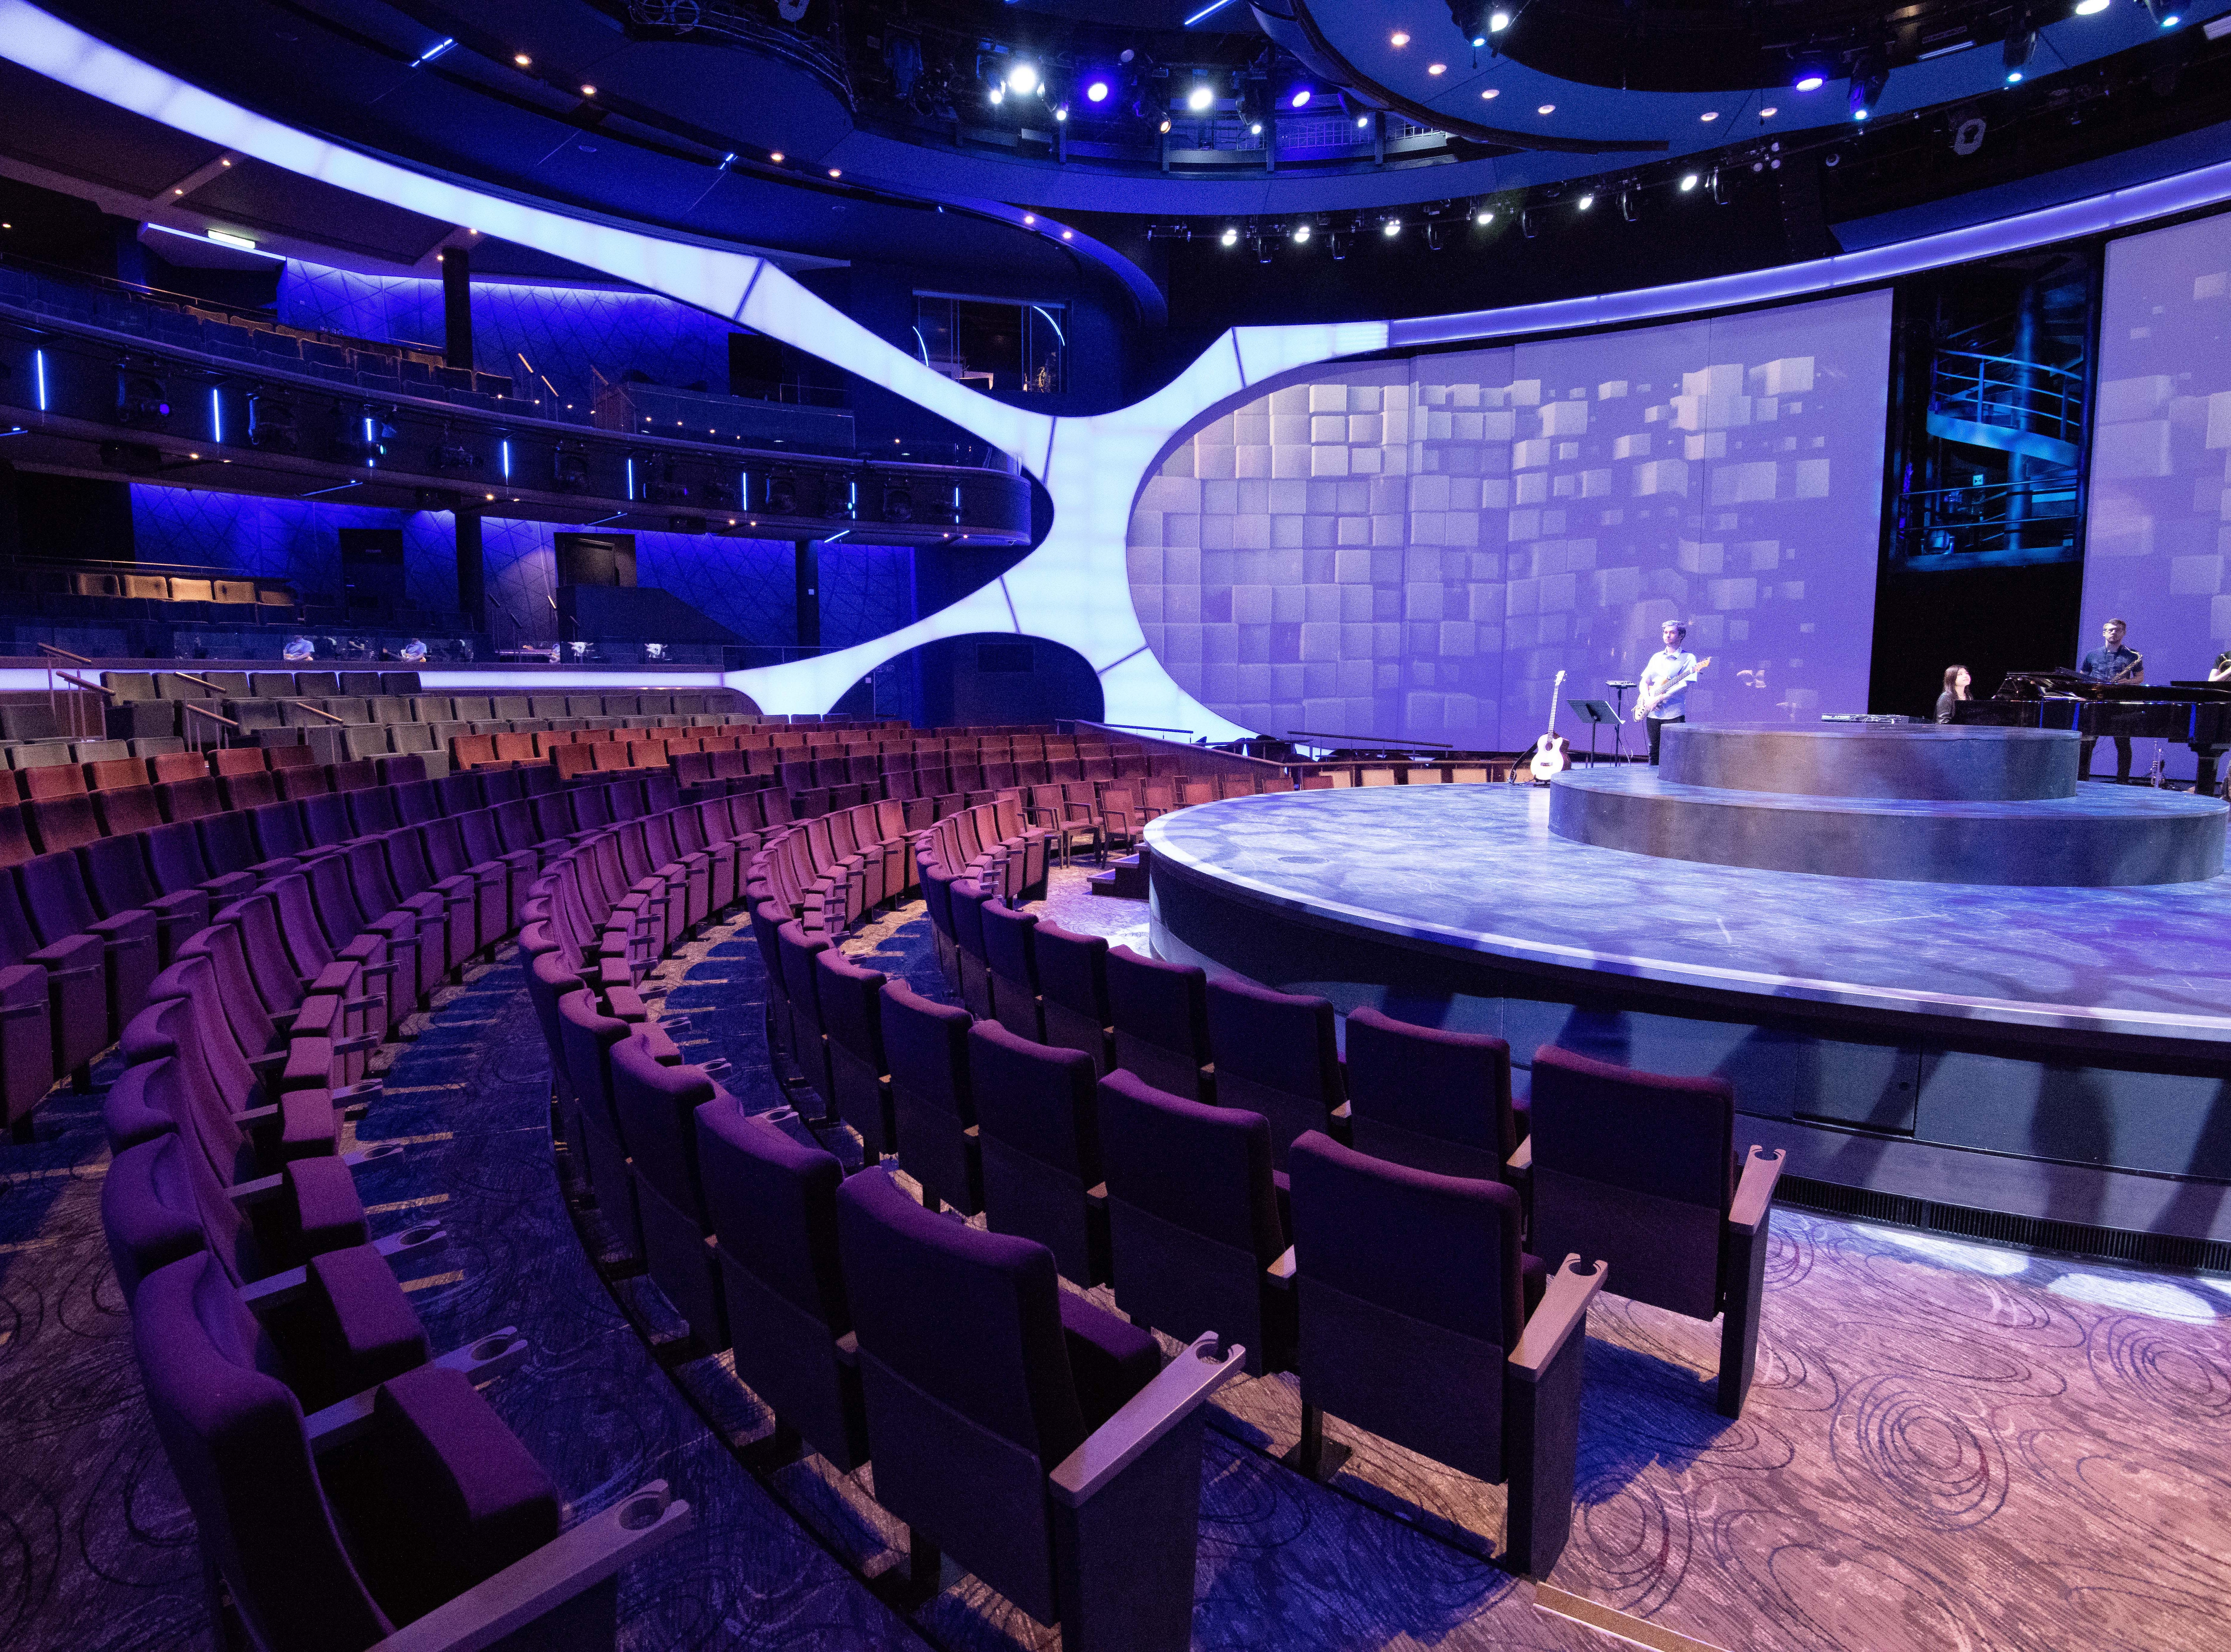 Celebrity Edge's main showroom, The Theatre, is an innovative space with a stage that thrusts forward into the audience area creating a theater-in-the-round sensation.